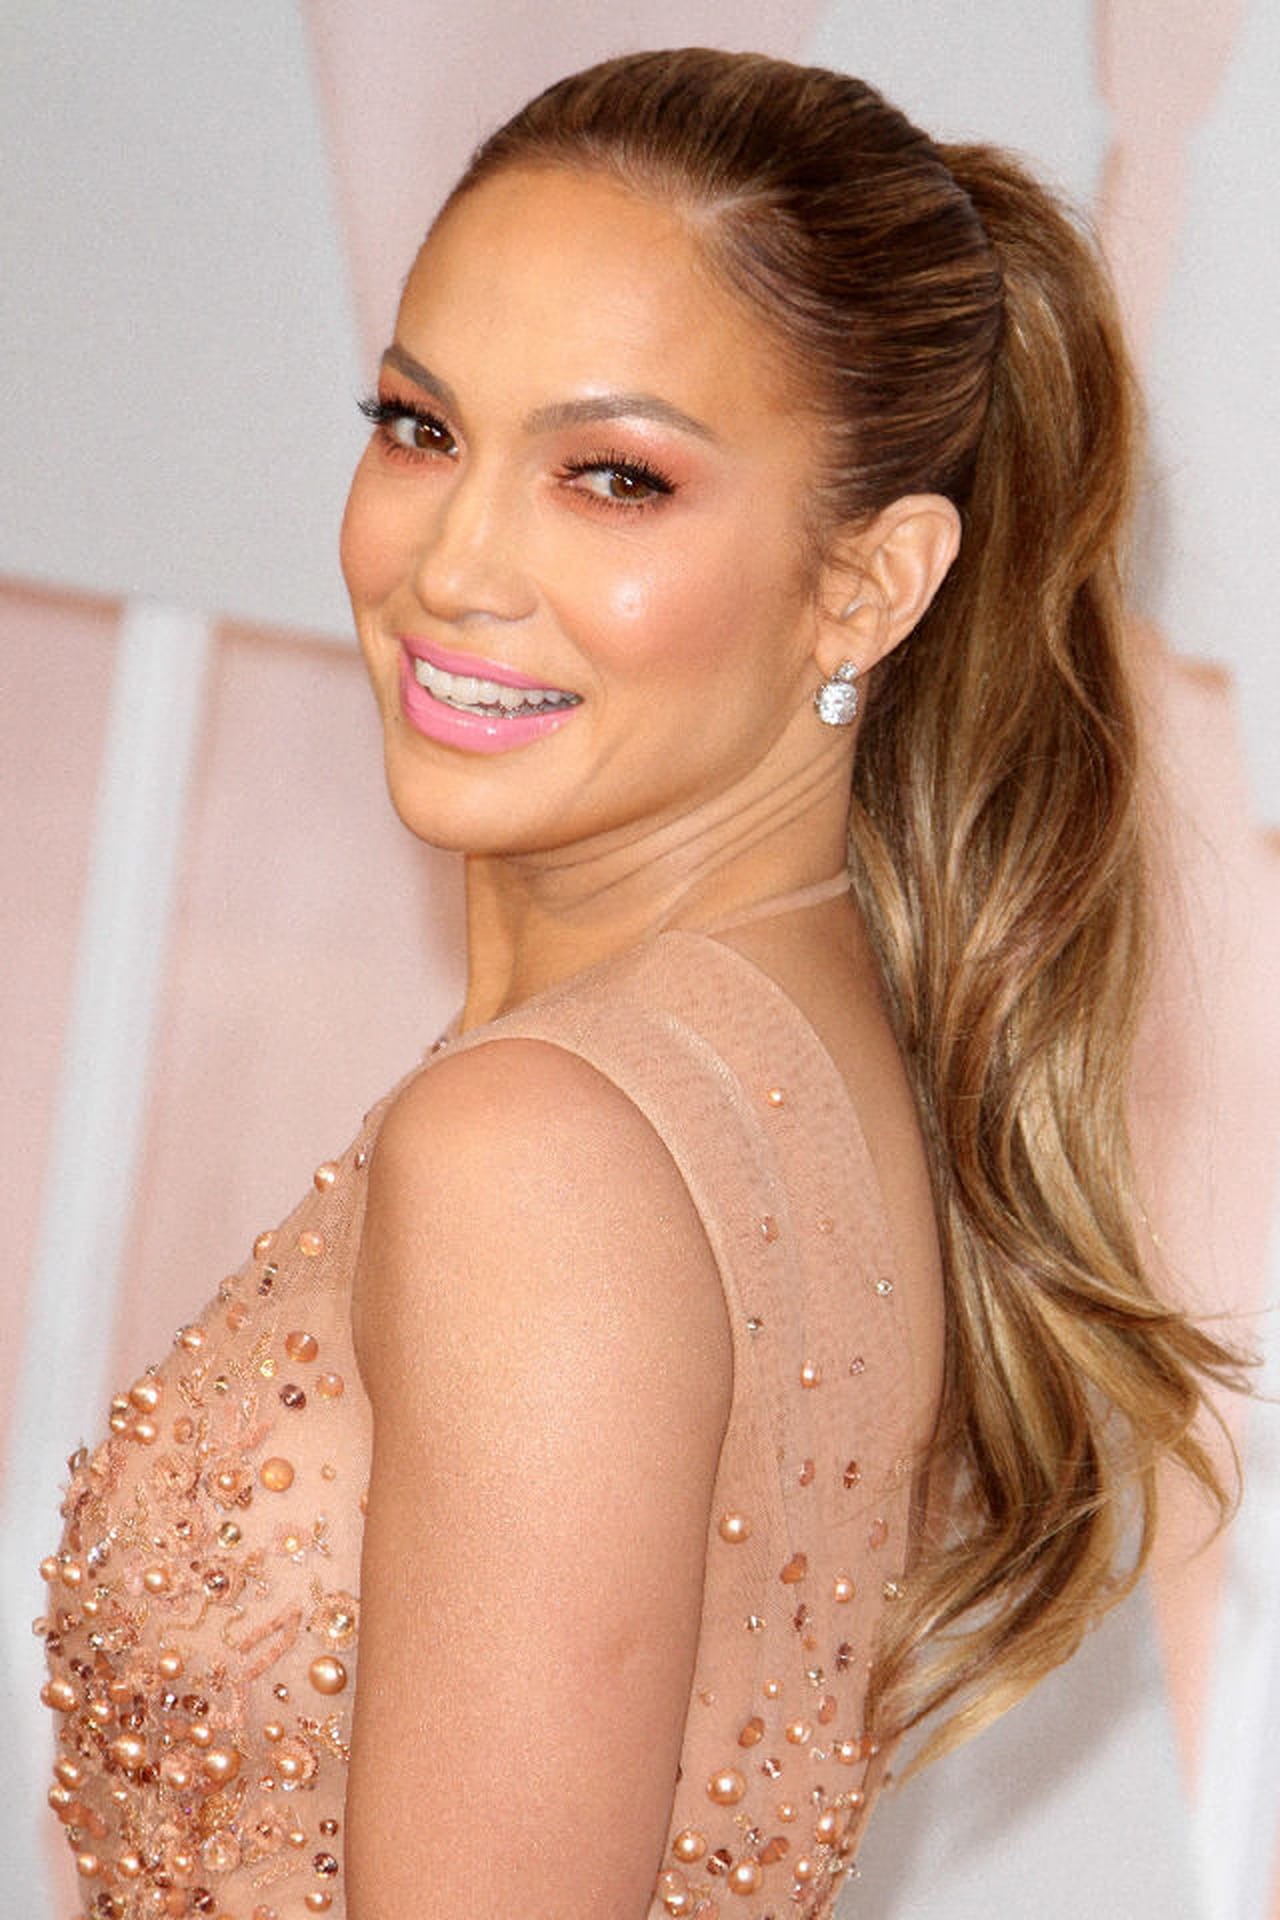 Capelli Color Caramello Copia Il Look Di Jennifer Lopez